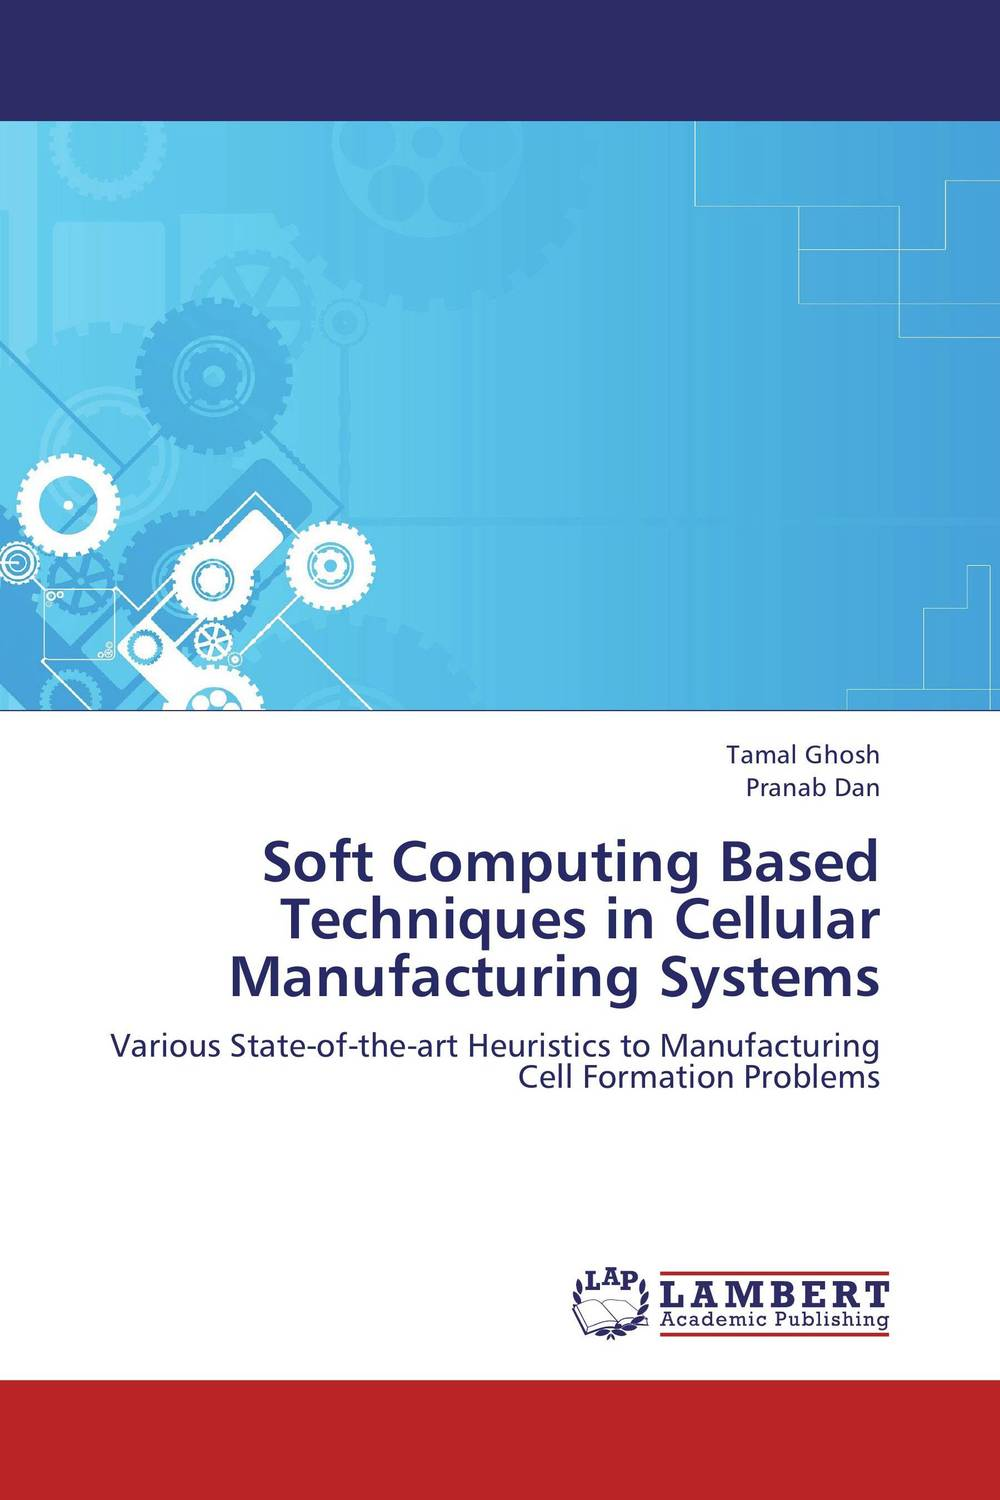 Soft Computing Based Techniques in Cellular Manufacturing Systems soft computing based techniques in cellular manufacturing systems